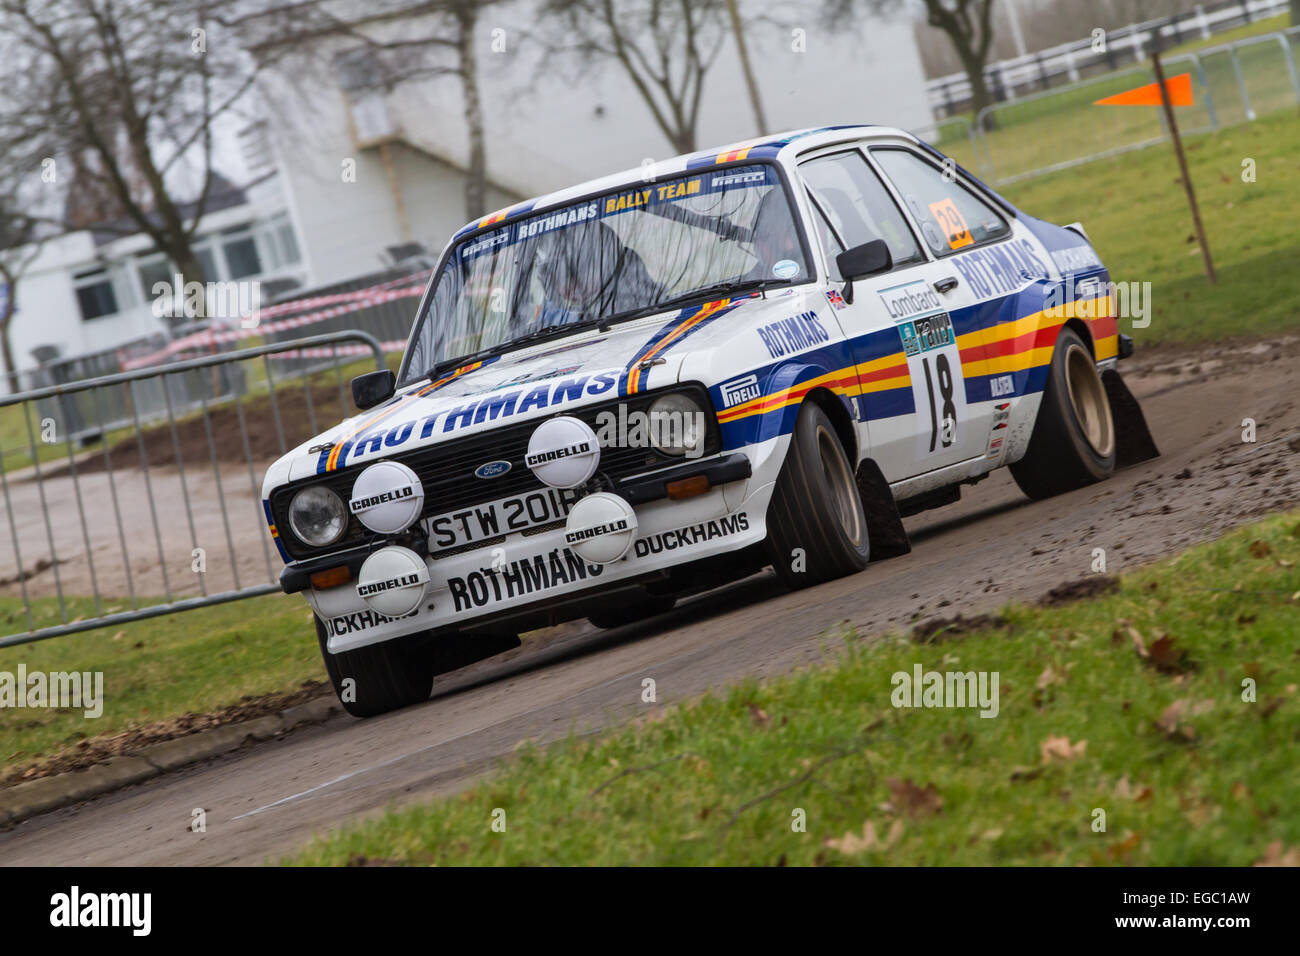 Coventry, UK. 22nd Feb, 2015. Race Retro Live Rally where classic ...